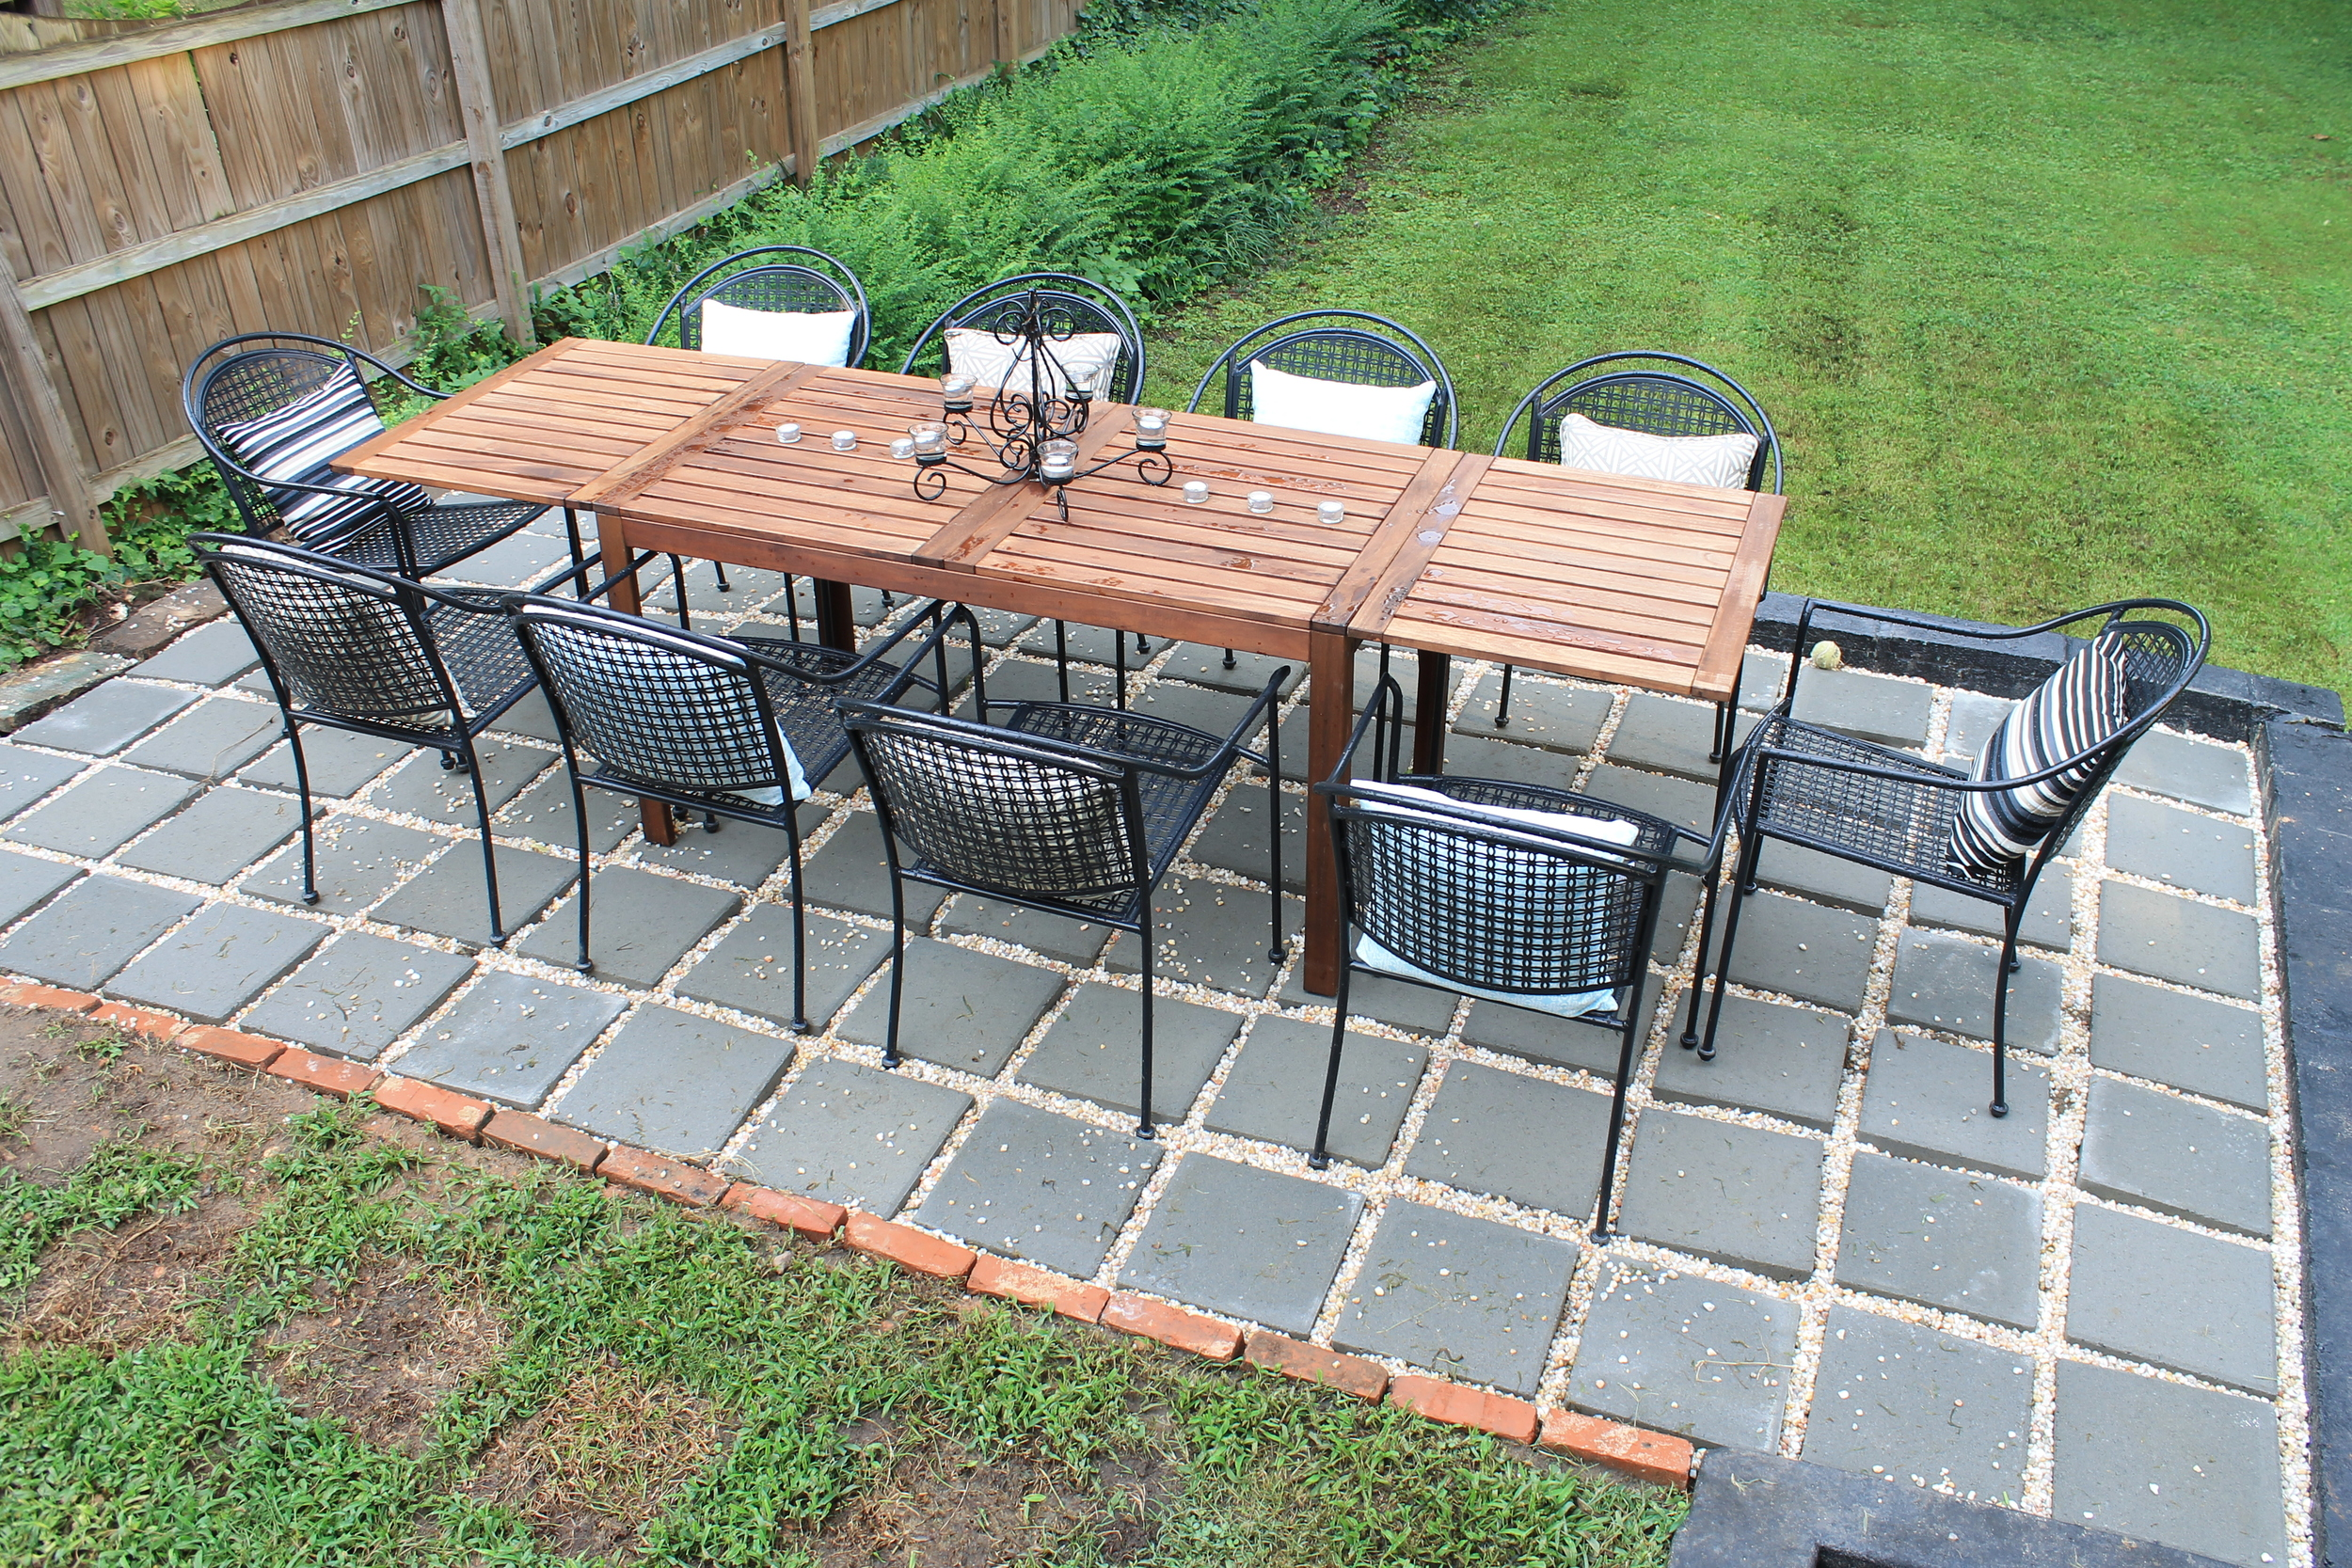 DIY Backyard Patio  Brooklyn House  Elizabeth Burns Design Raleigh NC Interior Designer